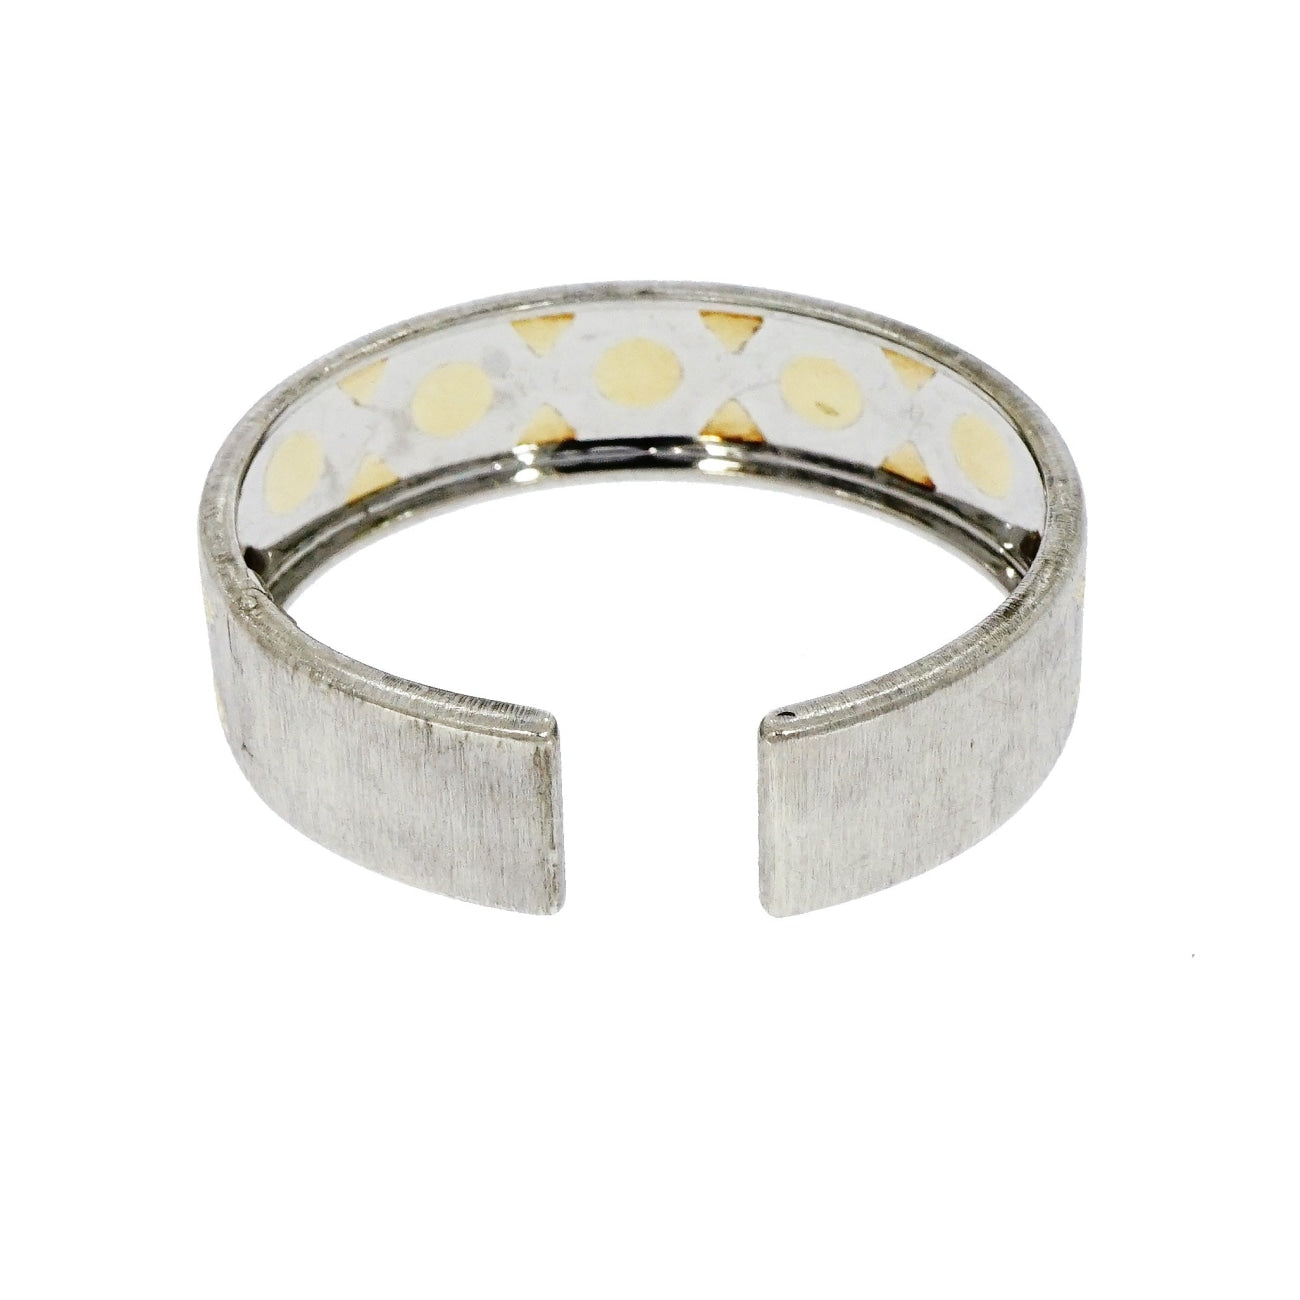 Estate Jewelry Estate Jewelry - Gianmaria Buccellati Sterling Silver & Yellow Gold Open Cuff Bracelet | Manfredi Jewels